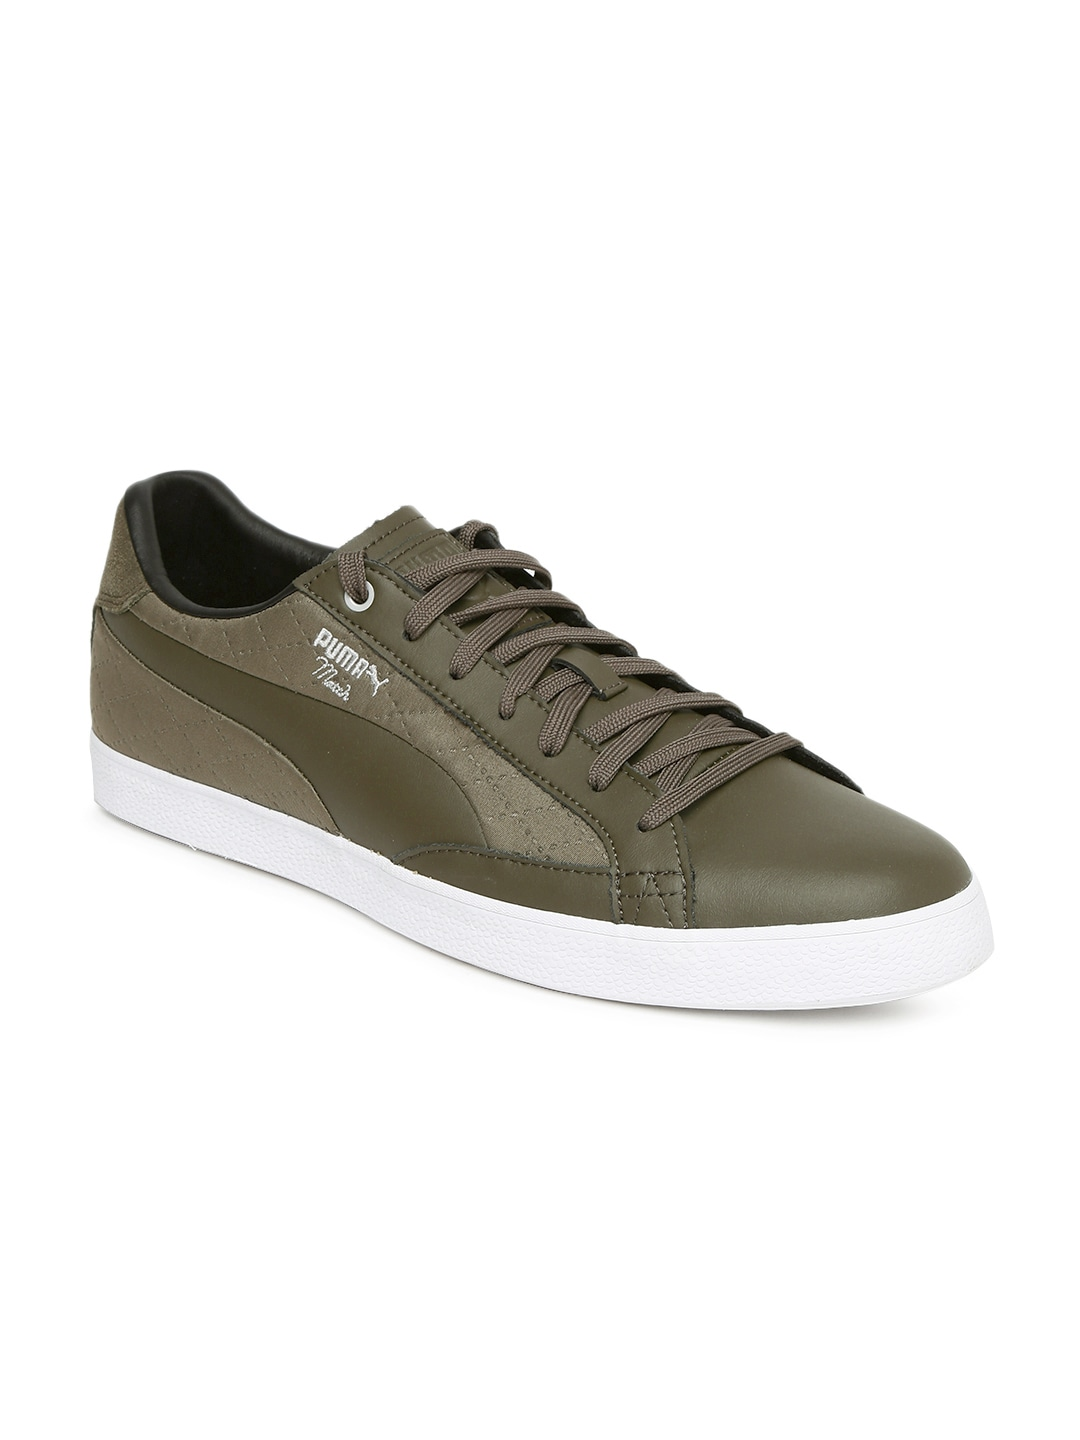 247ef1fc8a7 Puma Shoes - Buy Puma Shoes for Men   Women Online in India